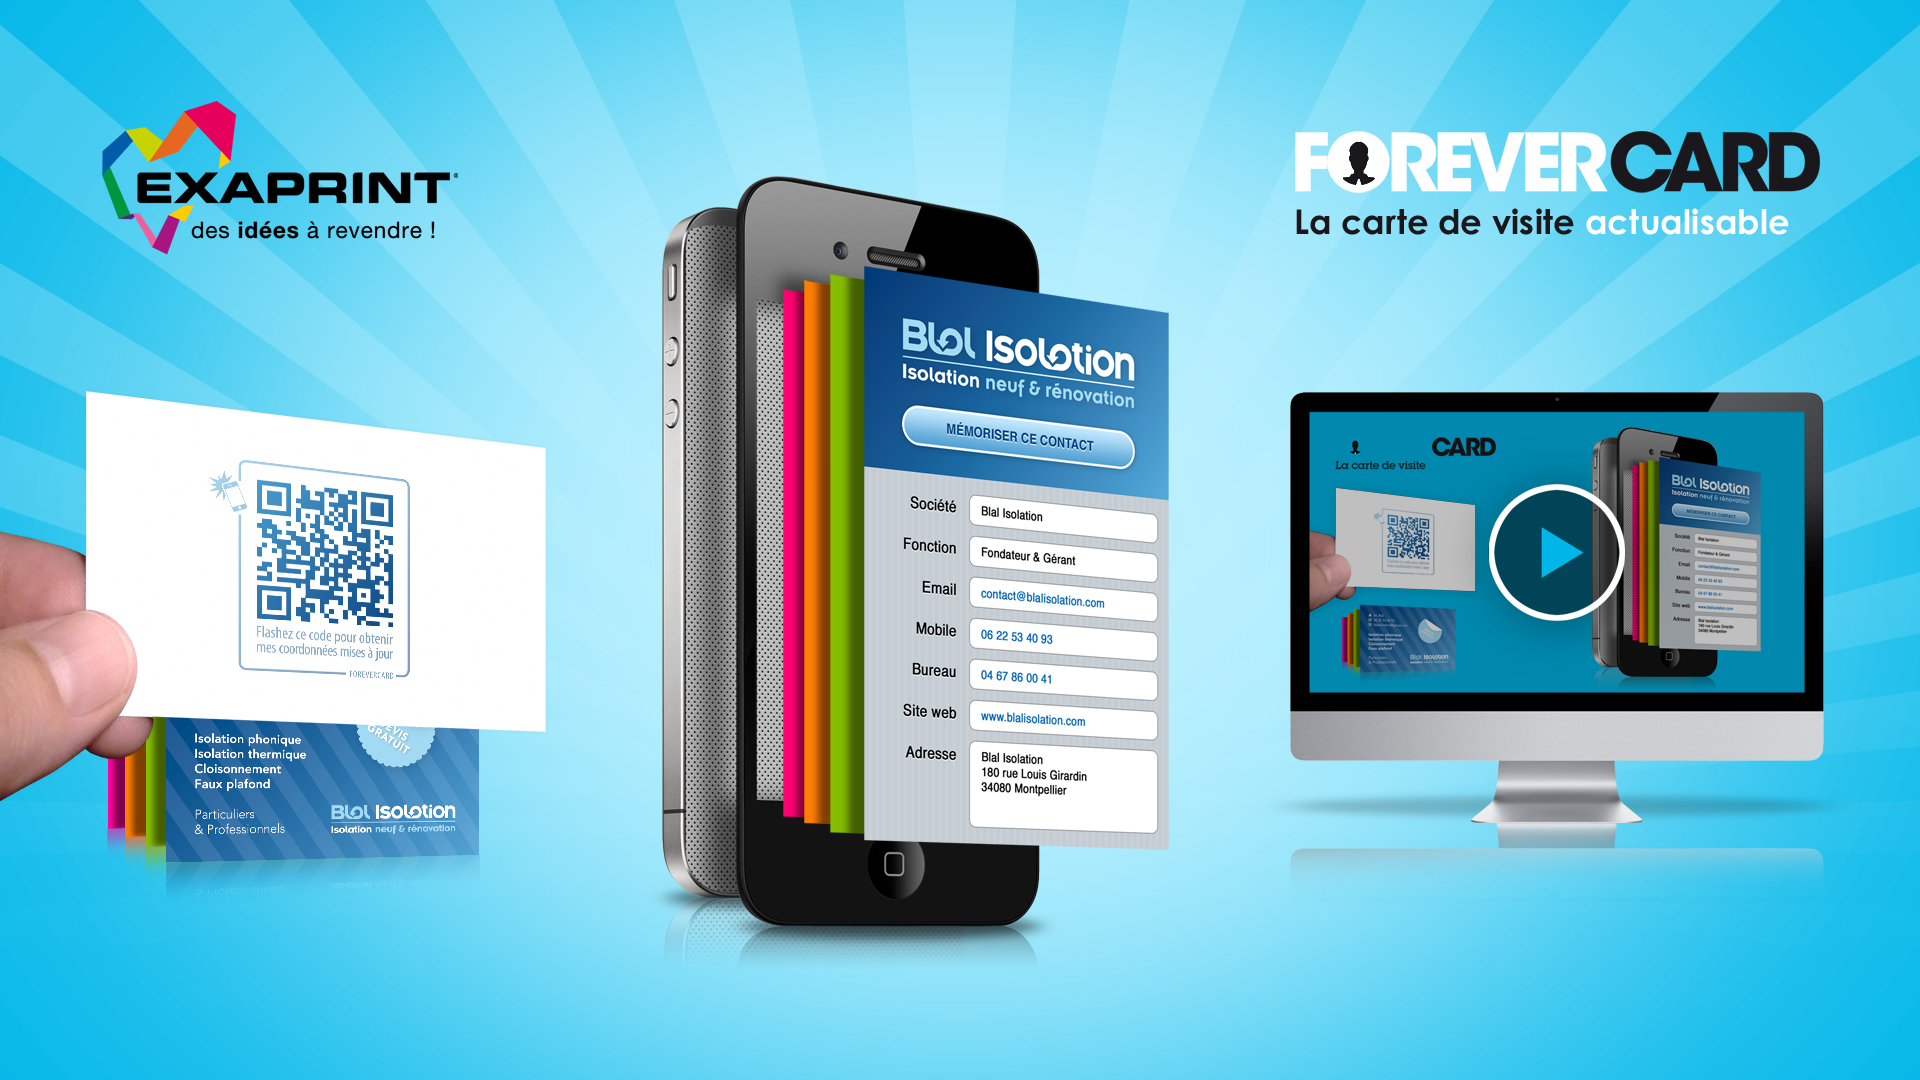 Exaprint Forevercard Creation Concept Visuel Mailing Site Communication